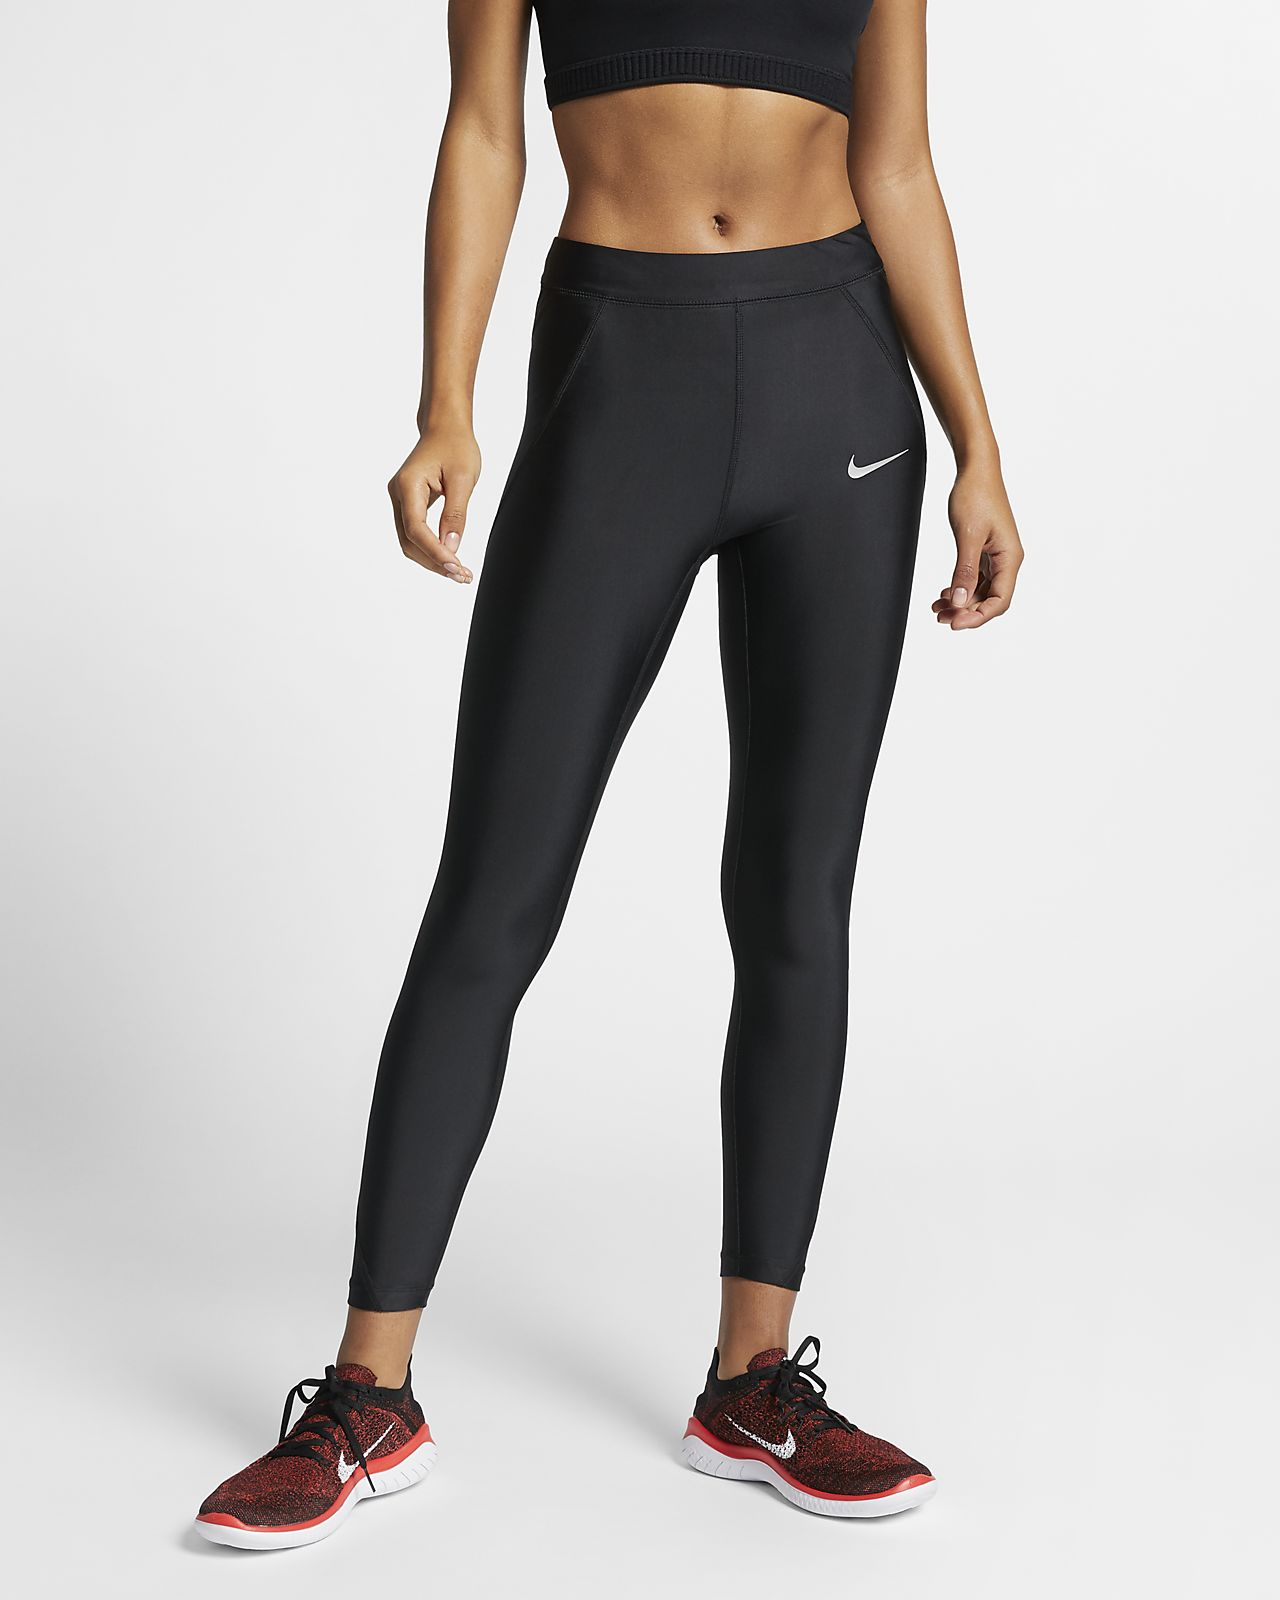 Nike Speed Women's 7/8 Tights